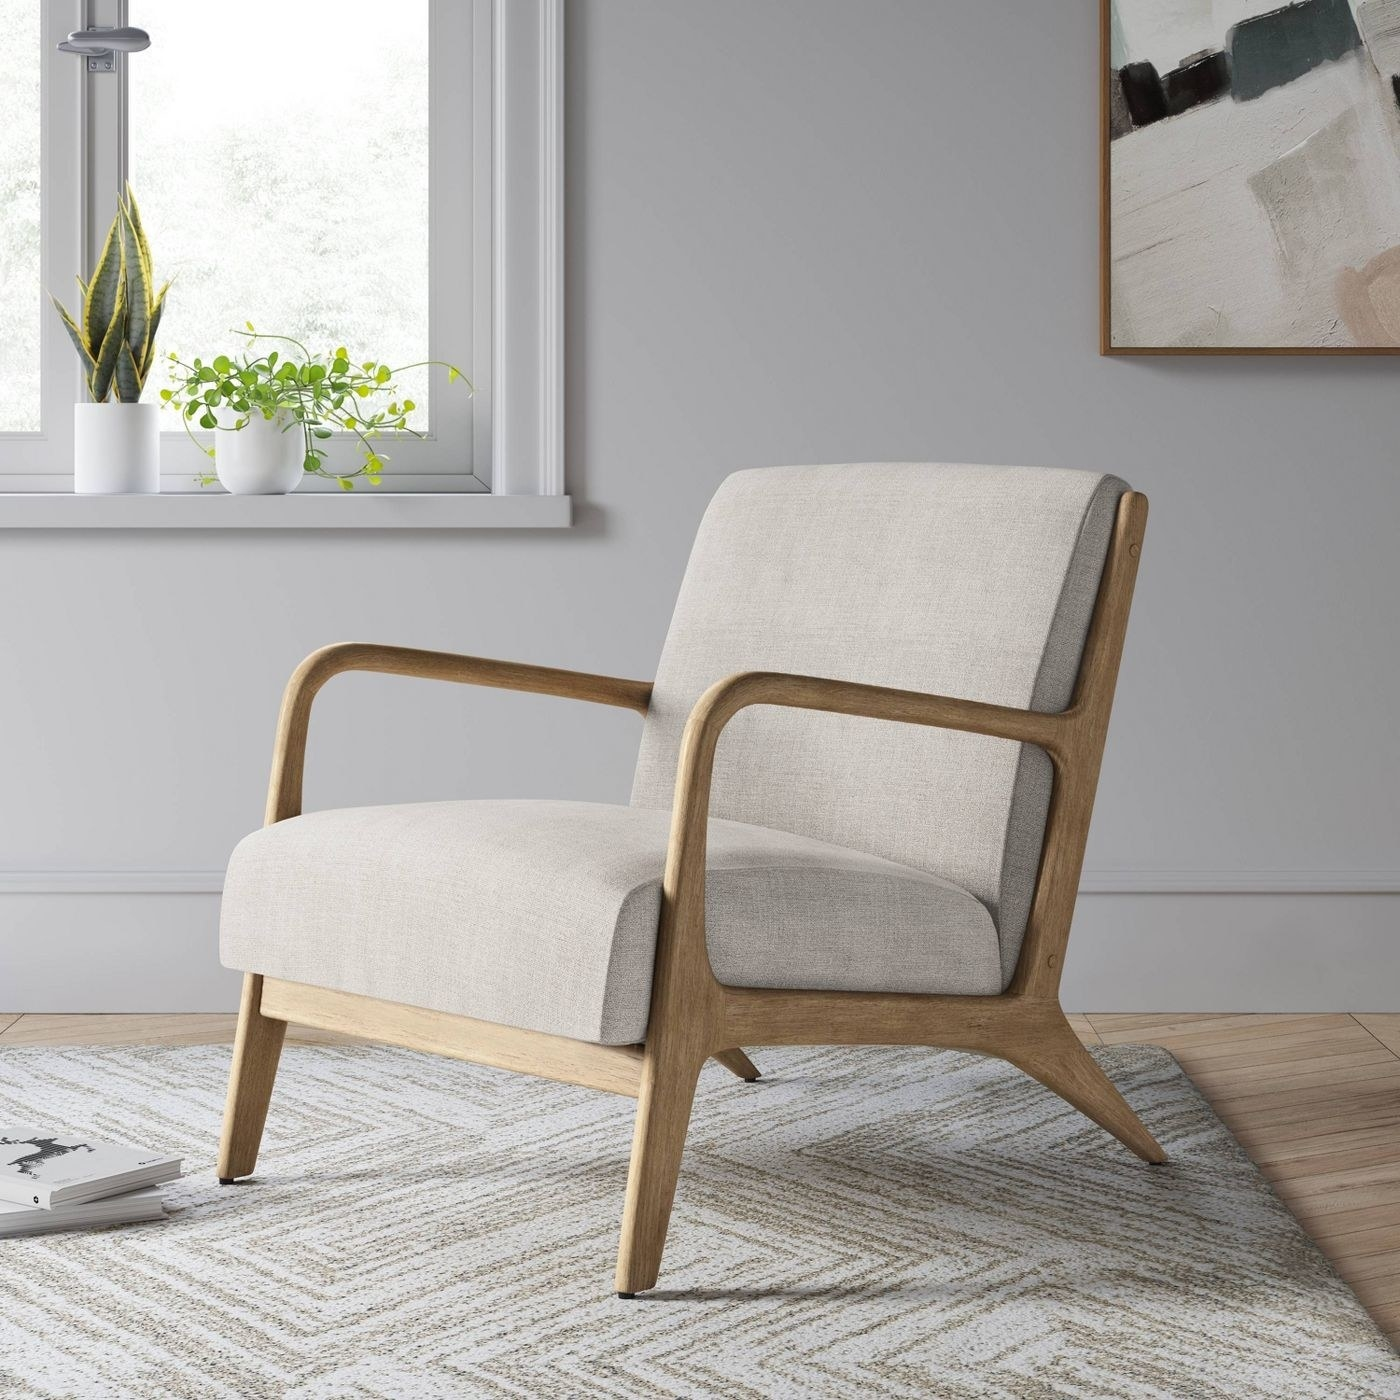 The cream/natural wood armchair